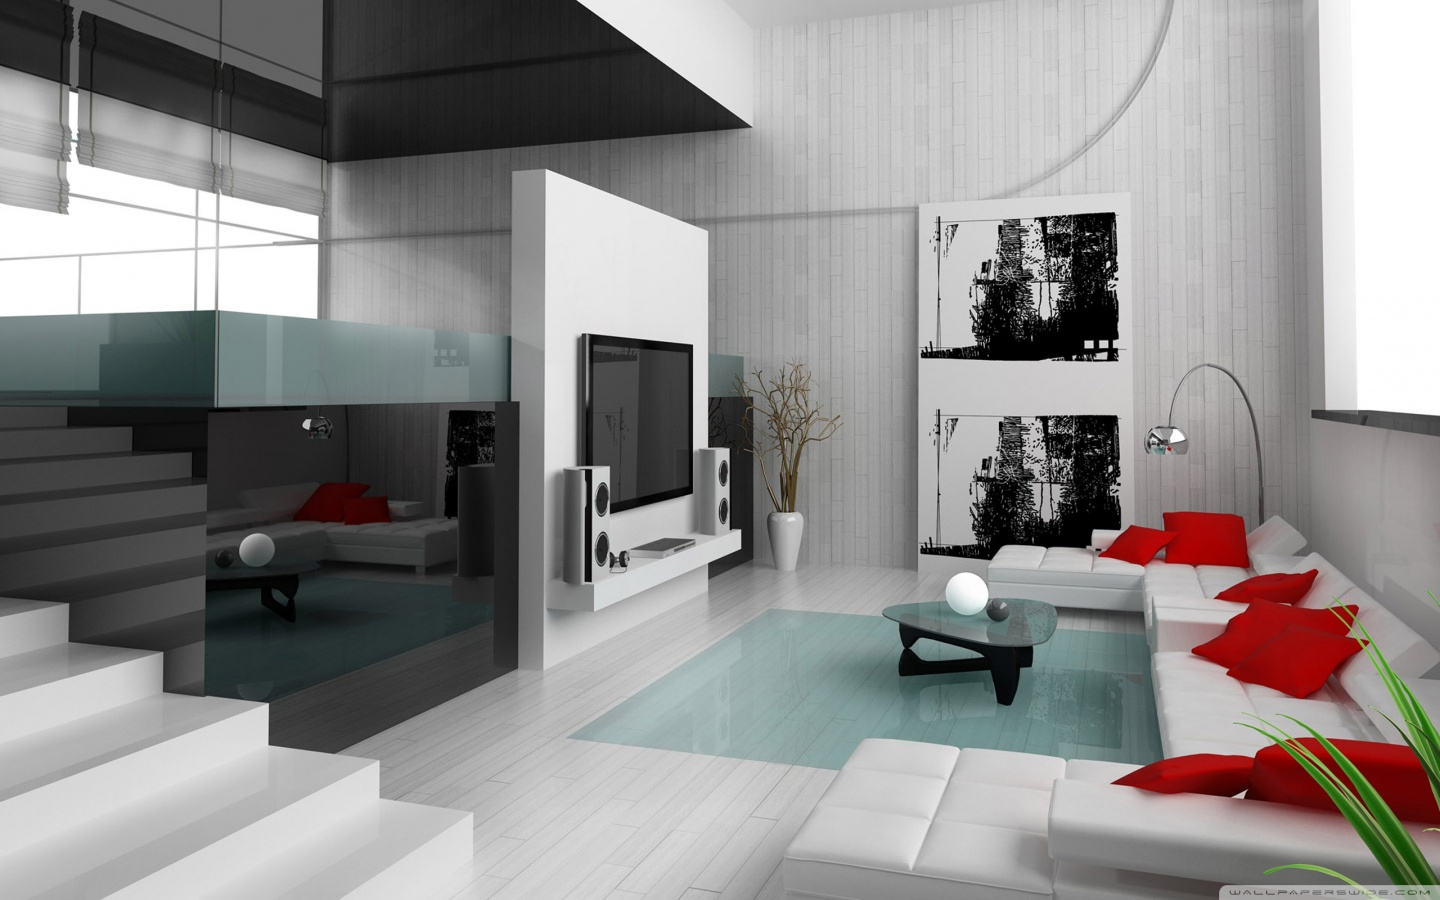 Minimalist interior design imagination art architecture for Home indoor design